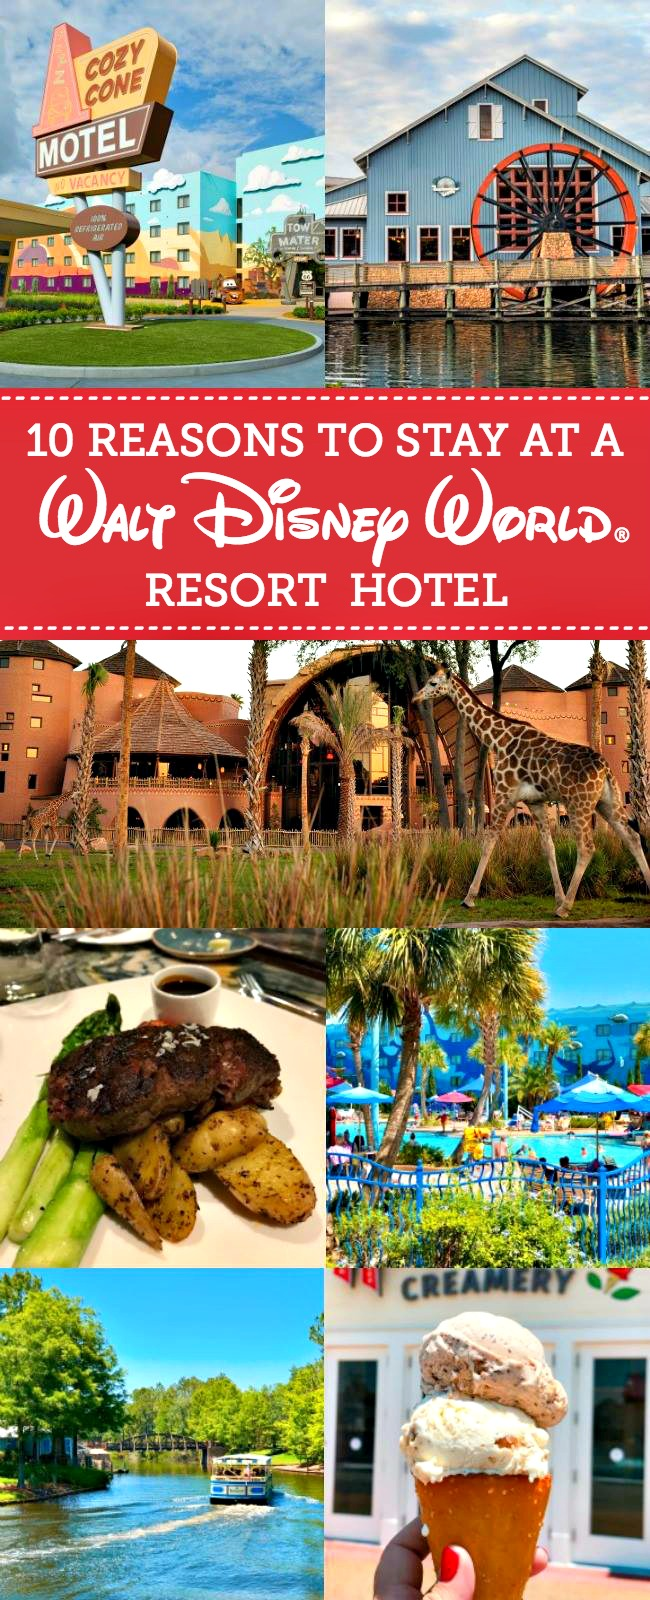 From Disney's Magical Express to Extra Magic Hours, we're sharing 10 Reasons to Stay at Walt Disney World® Resort!